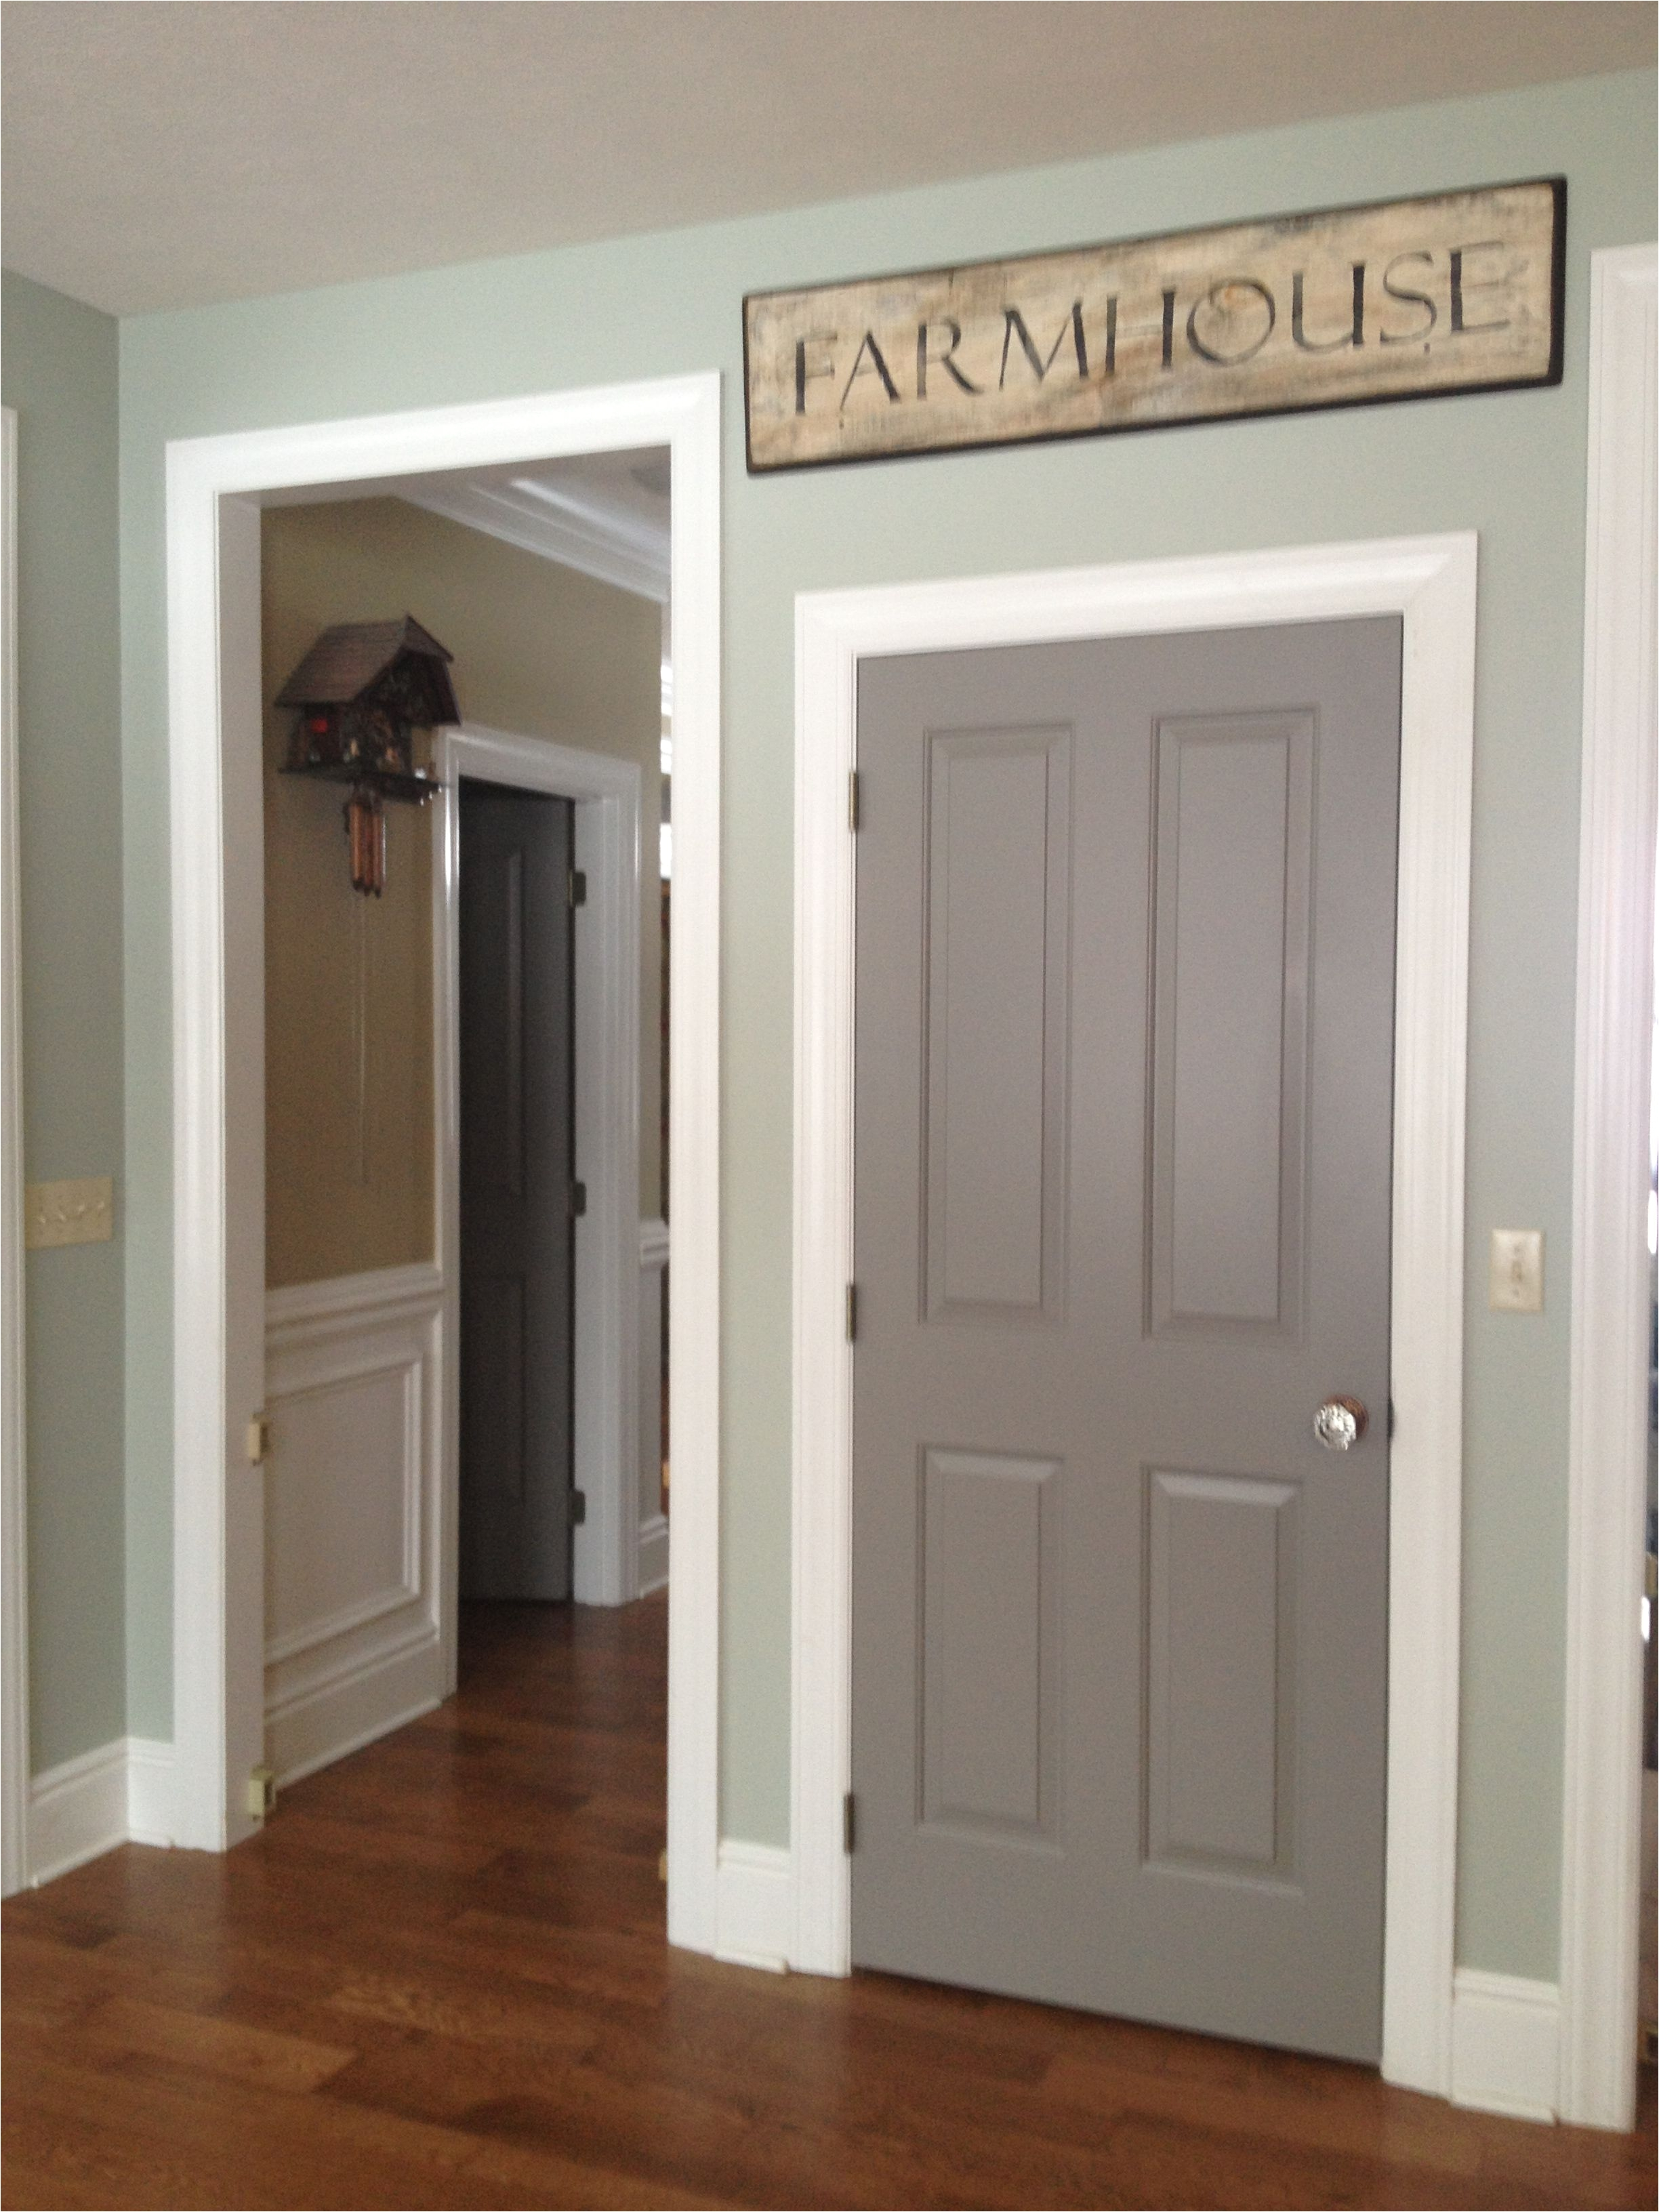 Best Paint for Interior Doors Uk Sherwin Williams Dovetail Grey the Door Color is What I Would Like